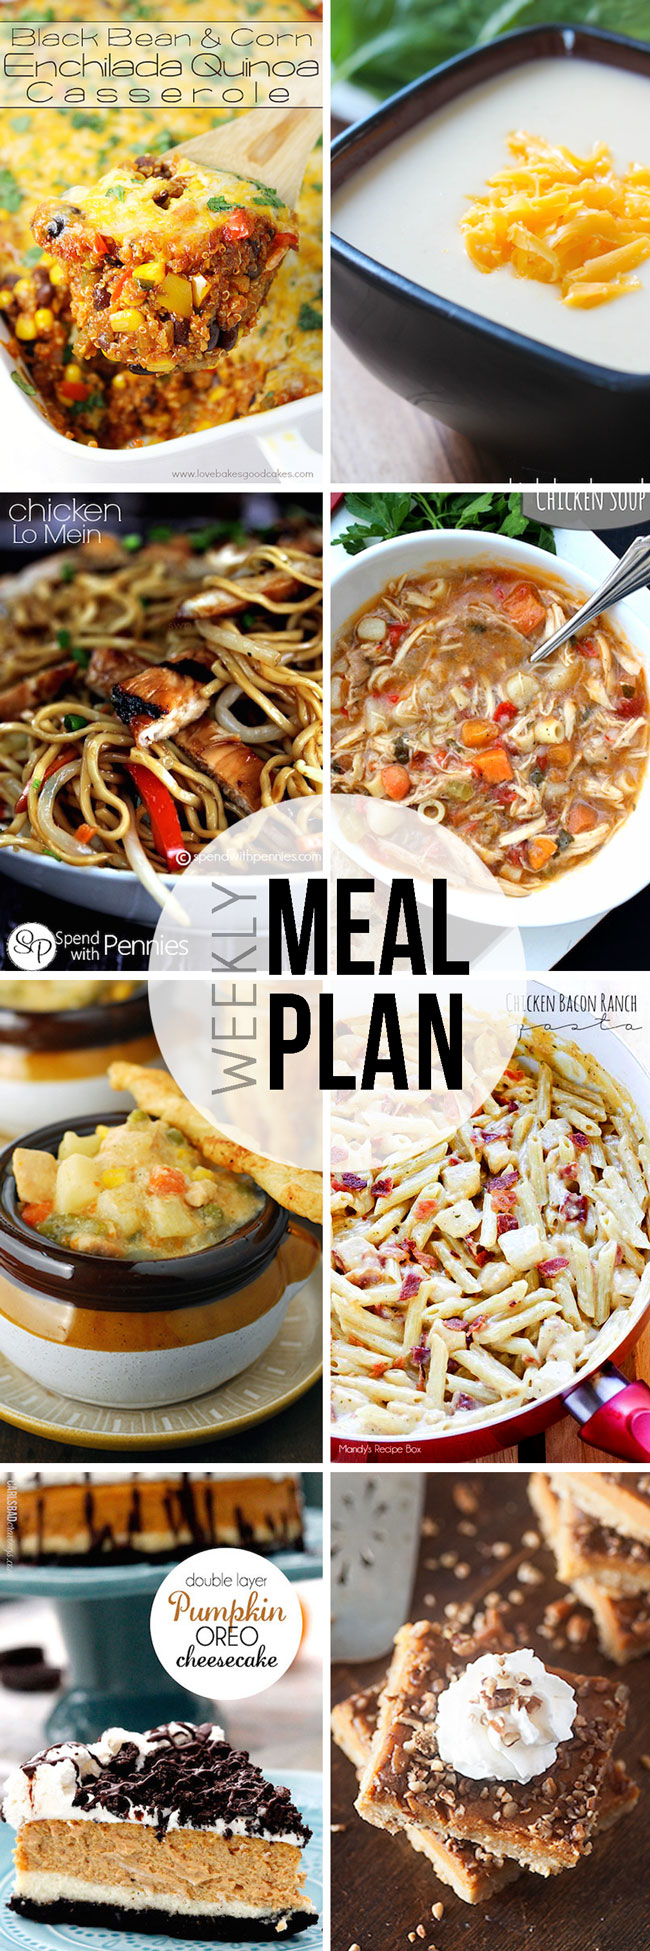 Meal-Plan---Pinterest-14